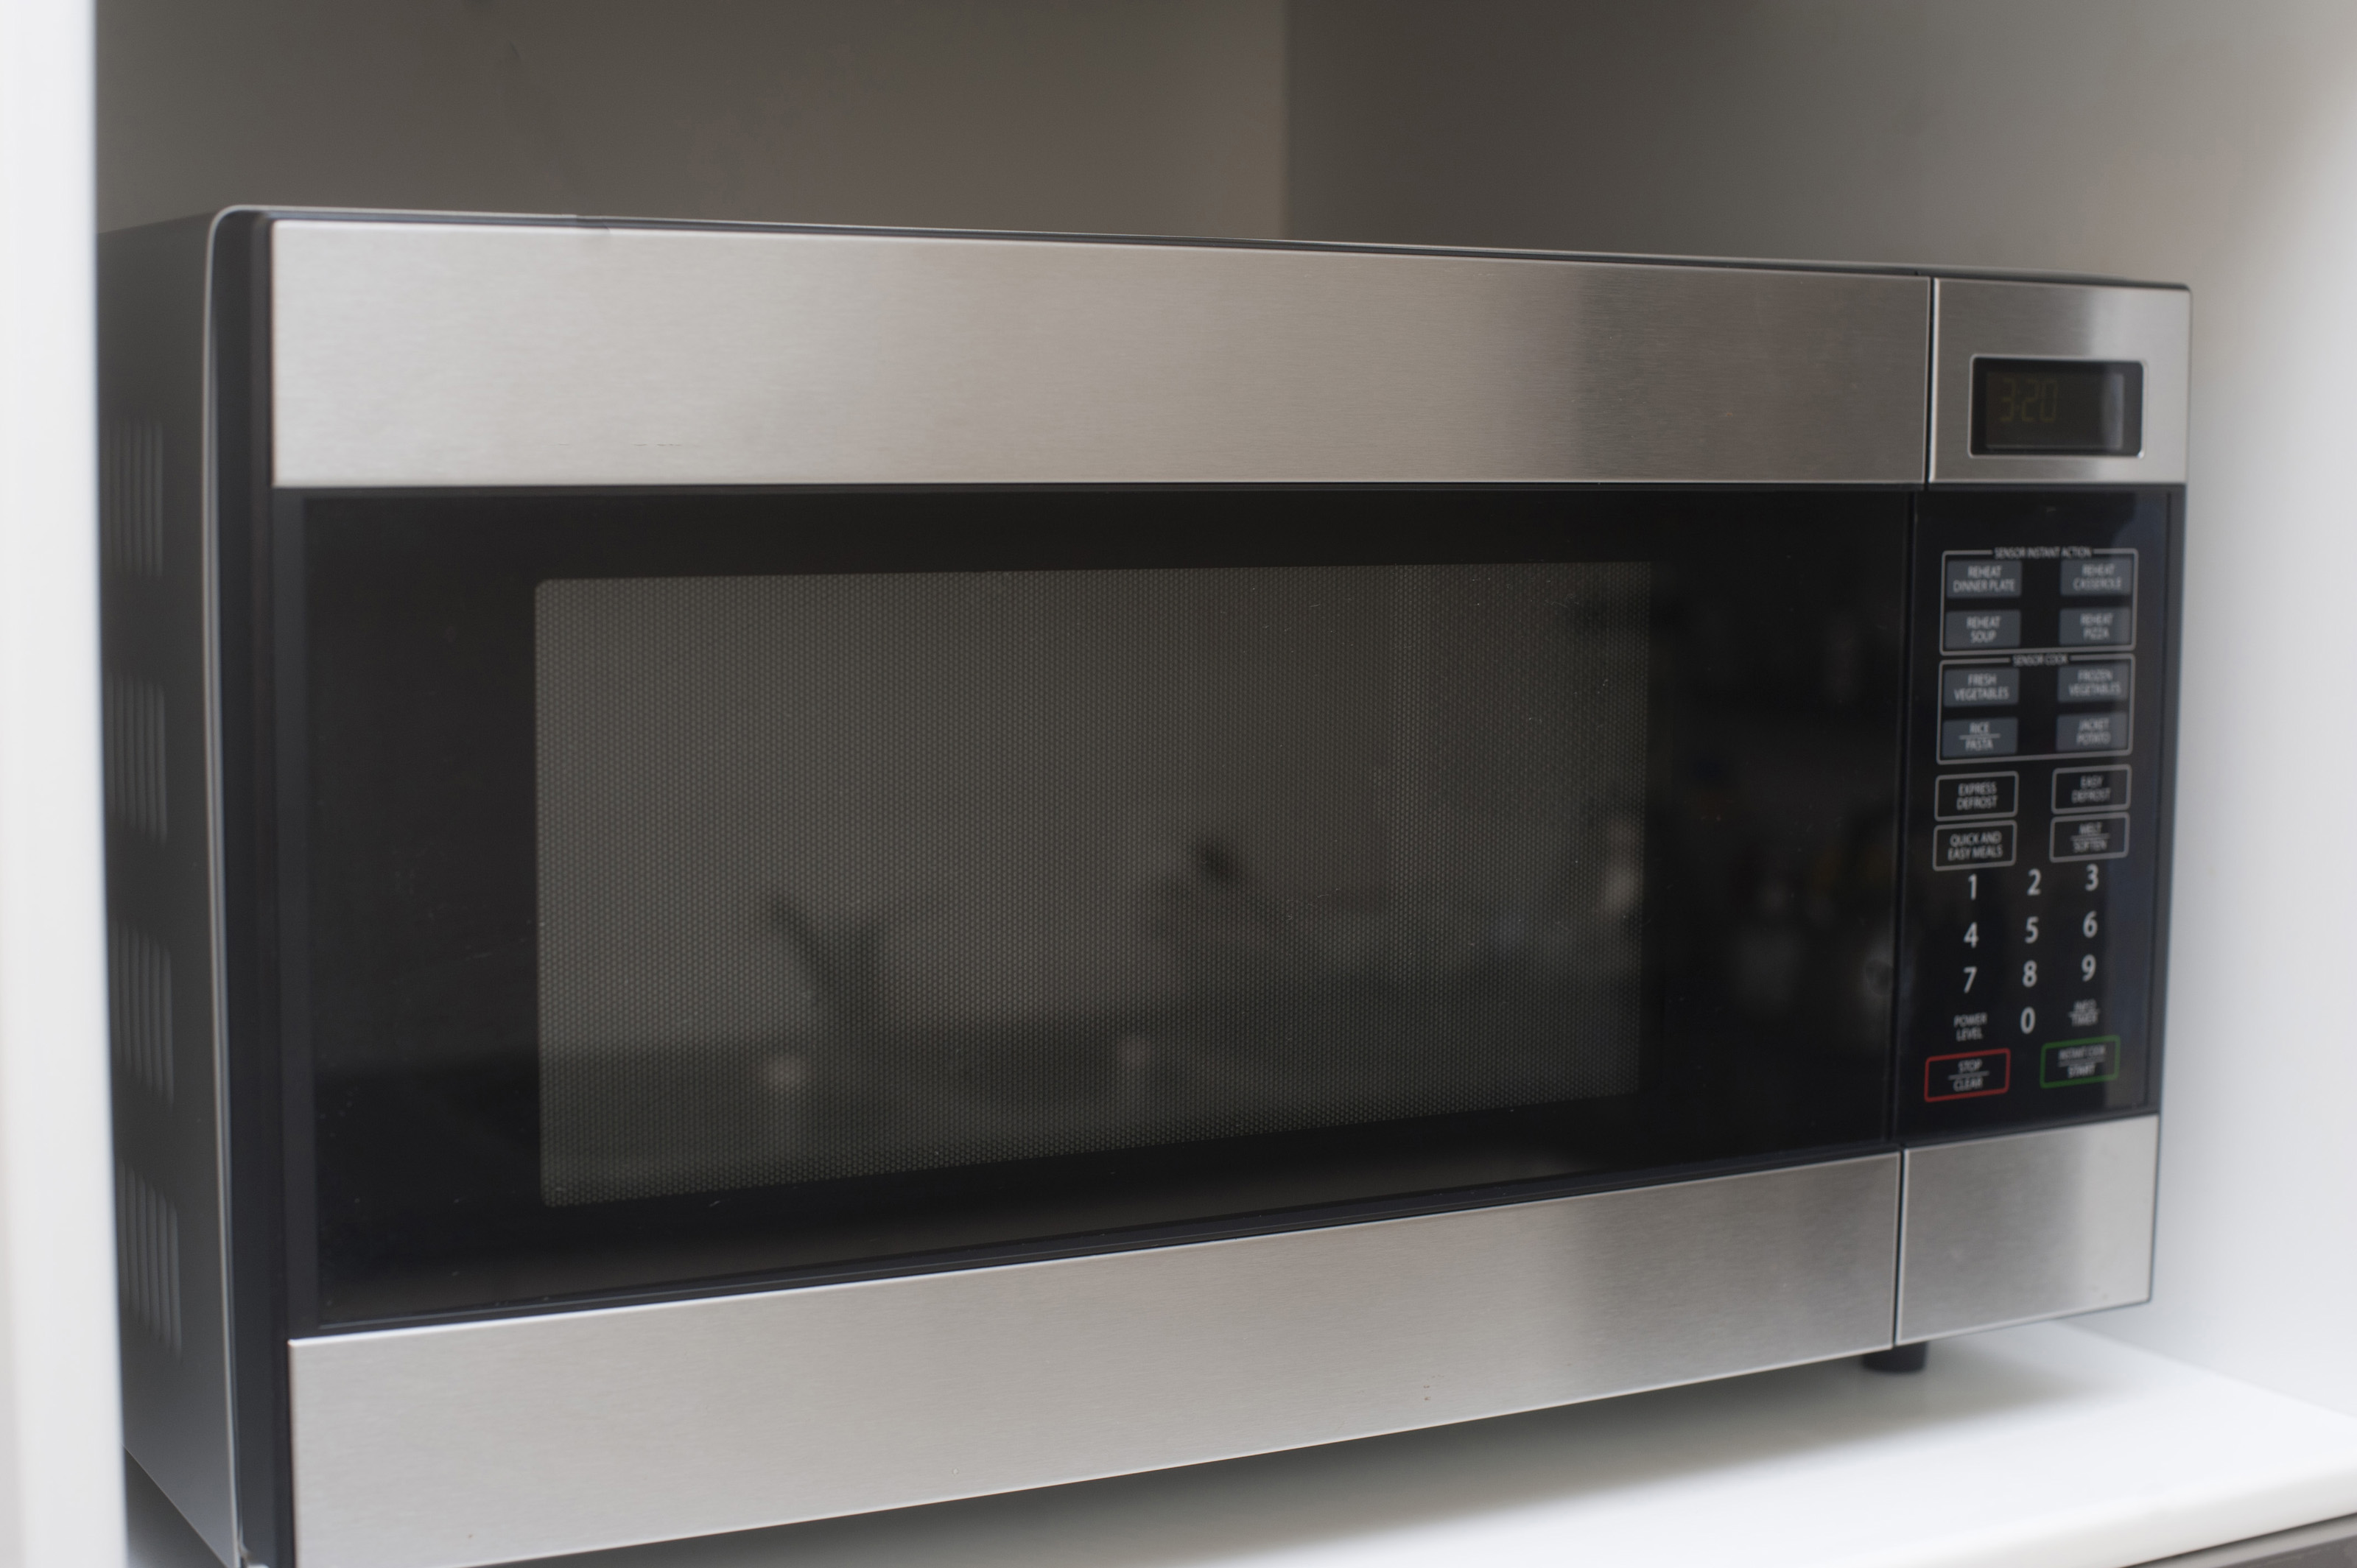 Modern Microwave free stock photo 8281 large microwave in a kitchen freeimageslive 6175 by guidejewelry.us